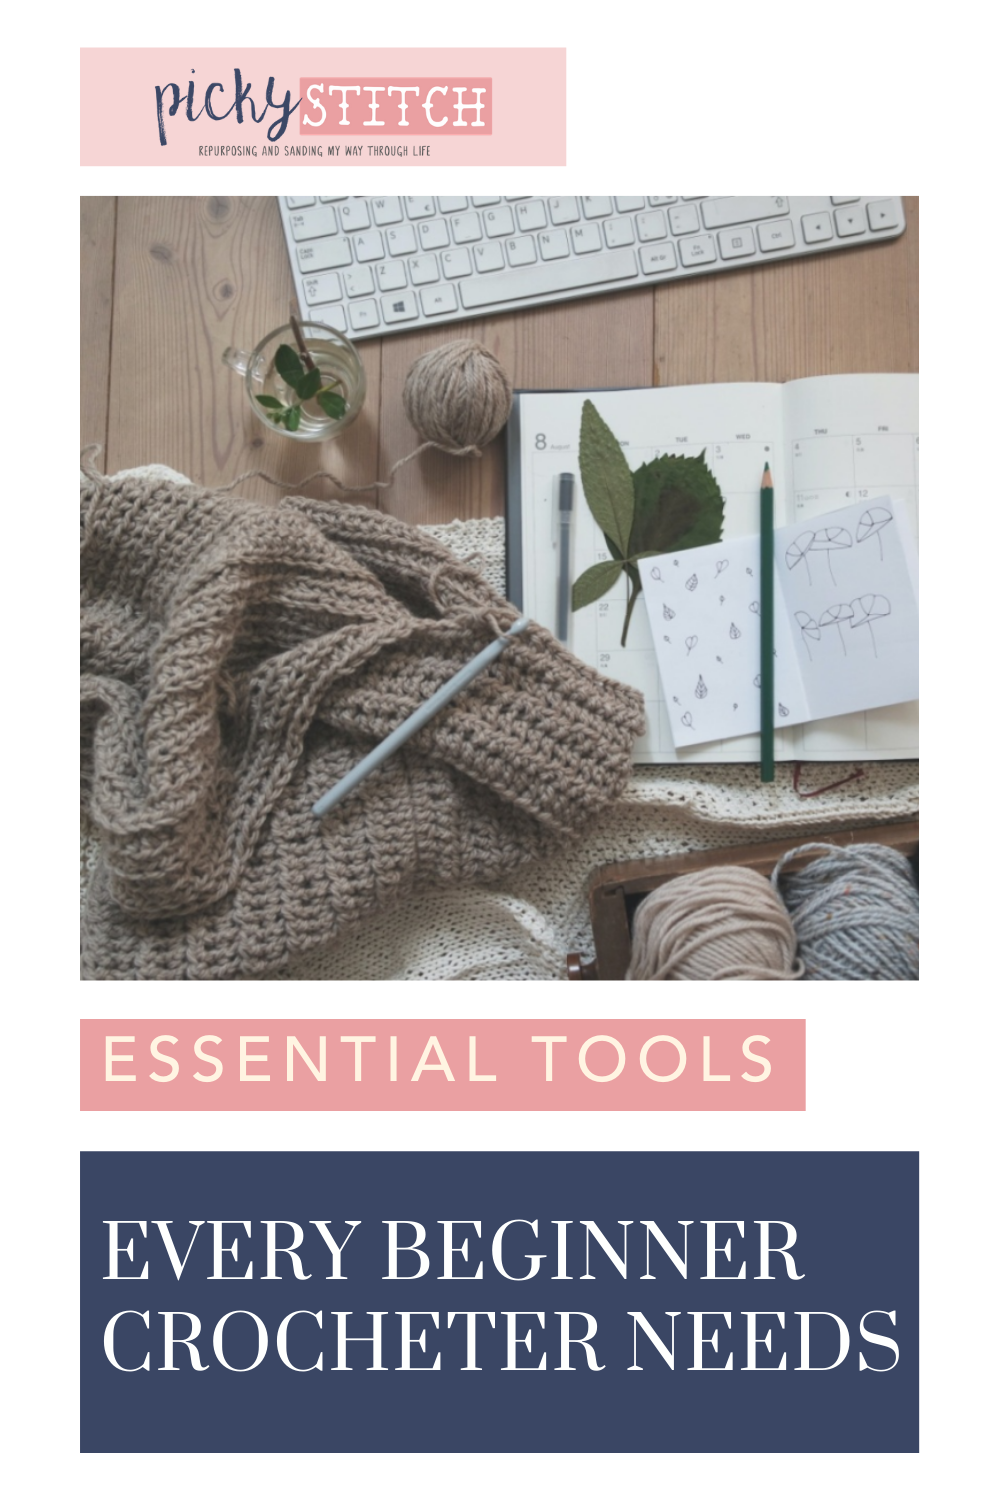 Pickystitch.com is loaded with tips and ideas to help you tackle any DIY project. Thinking about getting into the world of crochet? Find out all of the tools you'll need to get started!